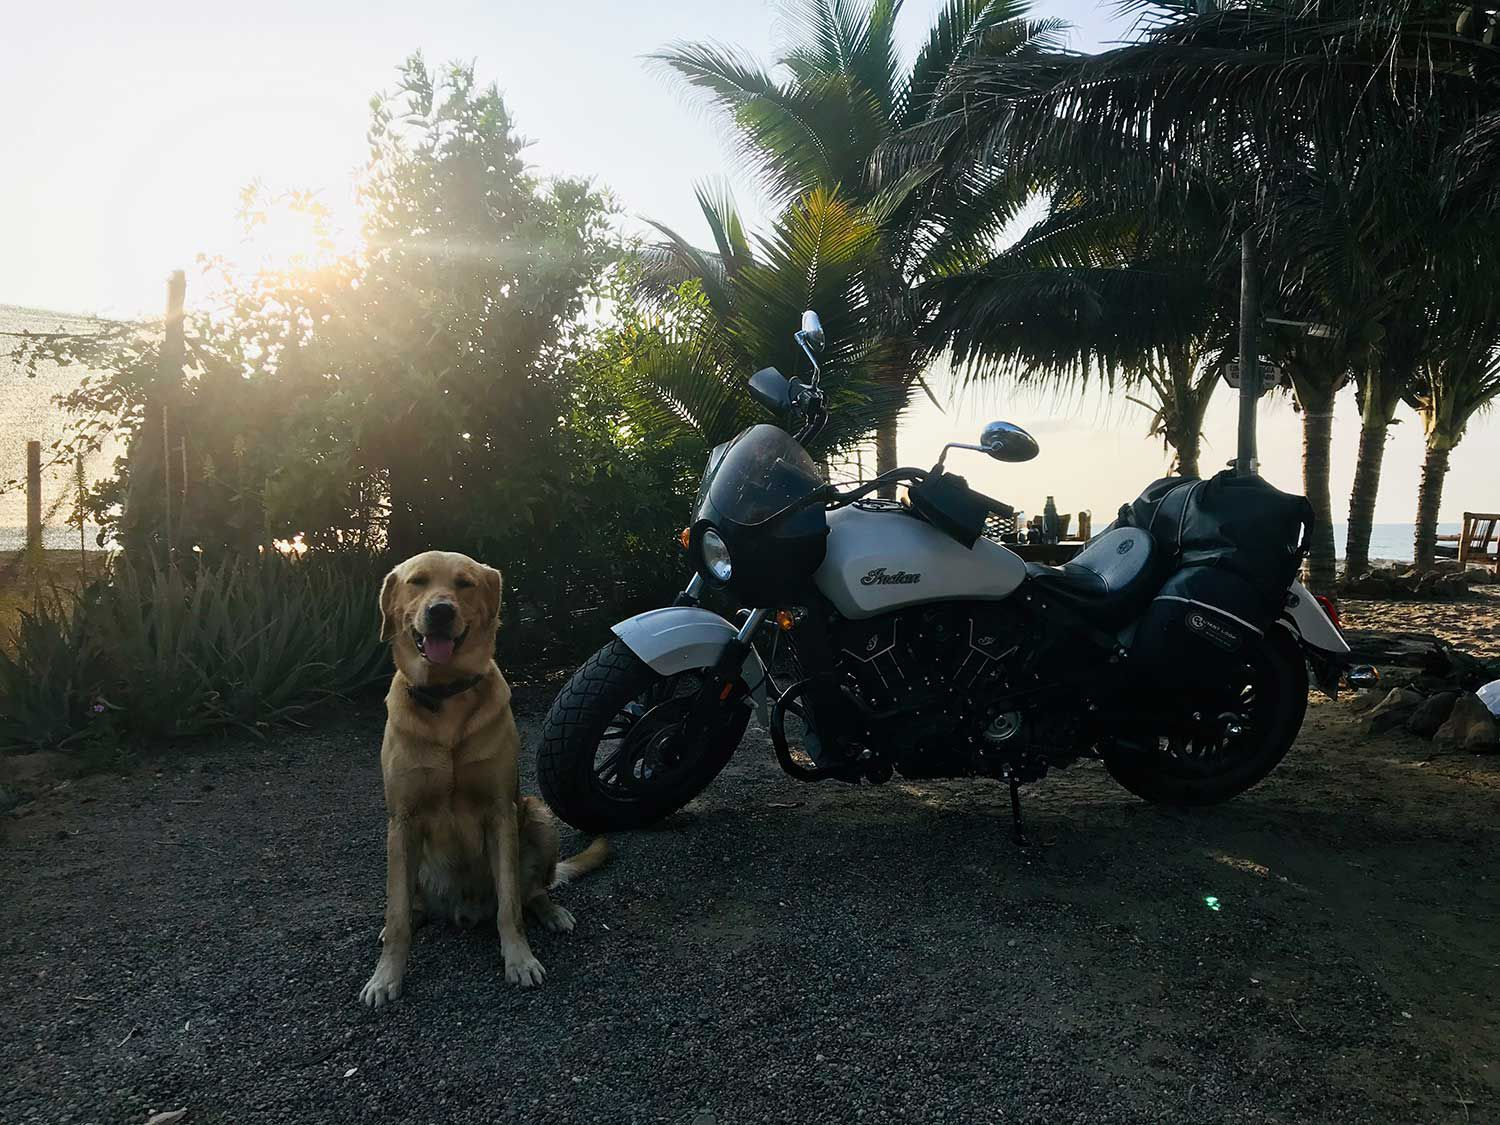 Motorcycles bring out the predator in the friendliest of Fidos.